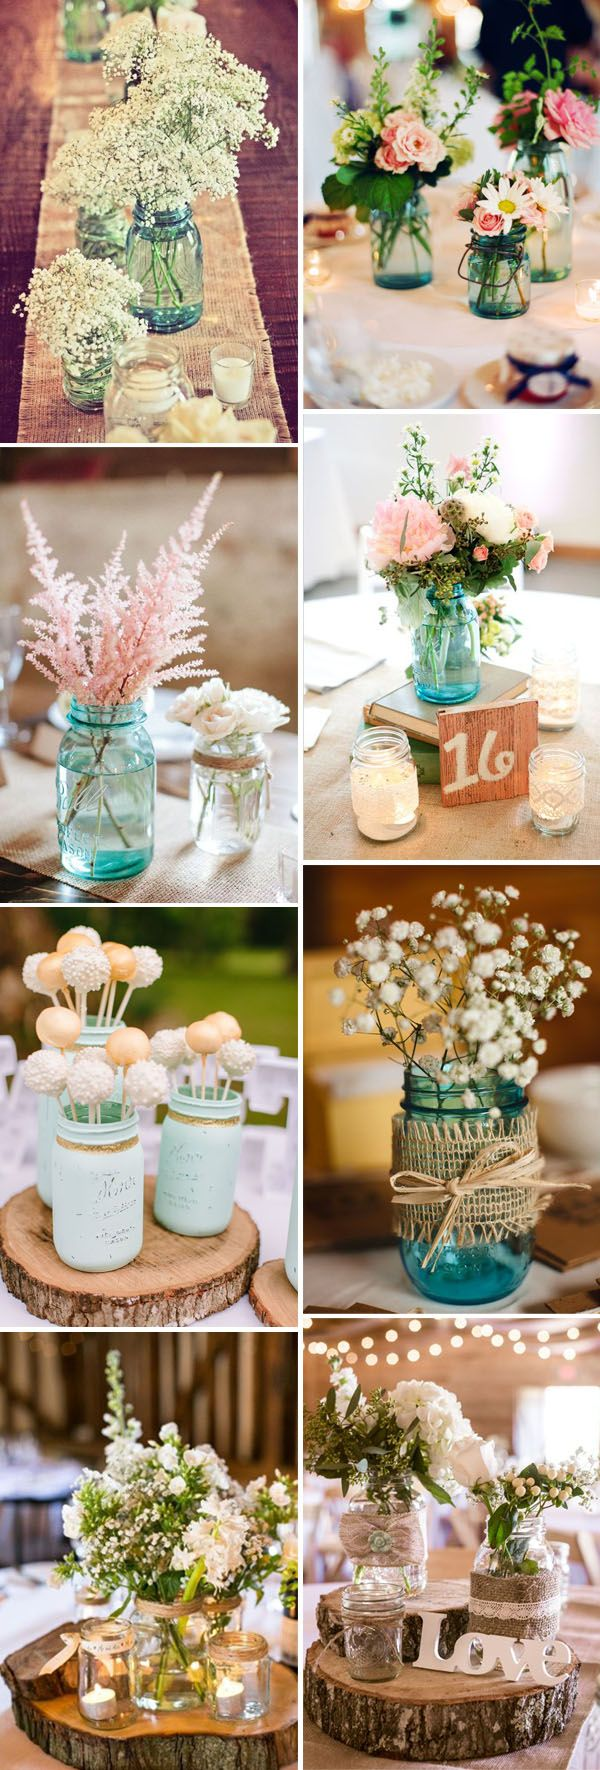 Cheap and versatile for DIY crafts projects, mason jars have become the range for rustic and vintage weddings. Mason jar crafts can make for such beautiful mason jar centerpieces, candle holders, lanterns, aisle chair...